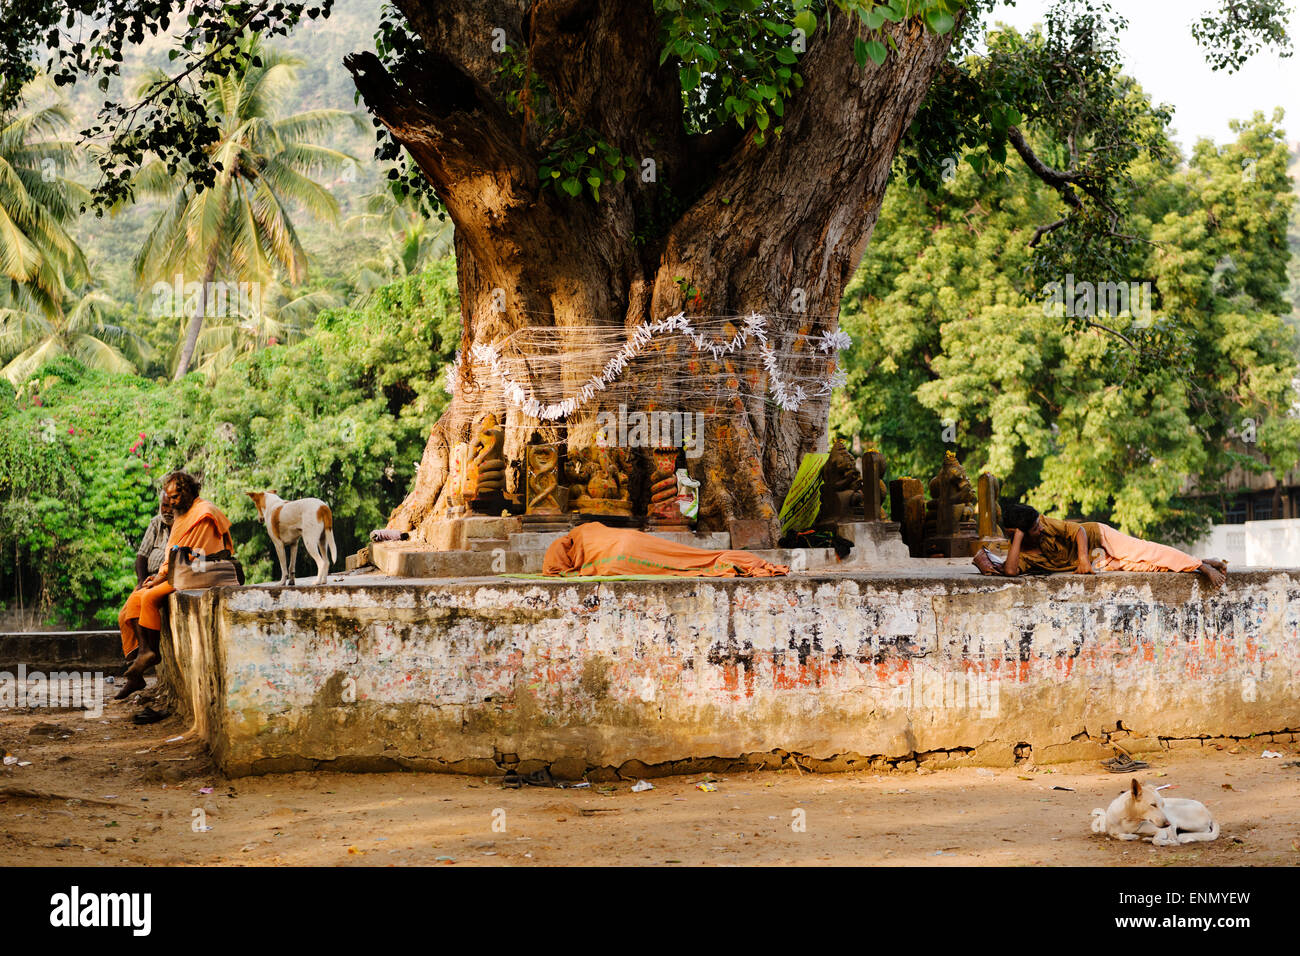 Sadhus resting under a tree after a hard day's work begging from people, Tiruvannamalai. - Stock Image